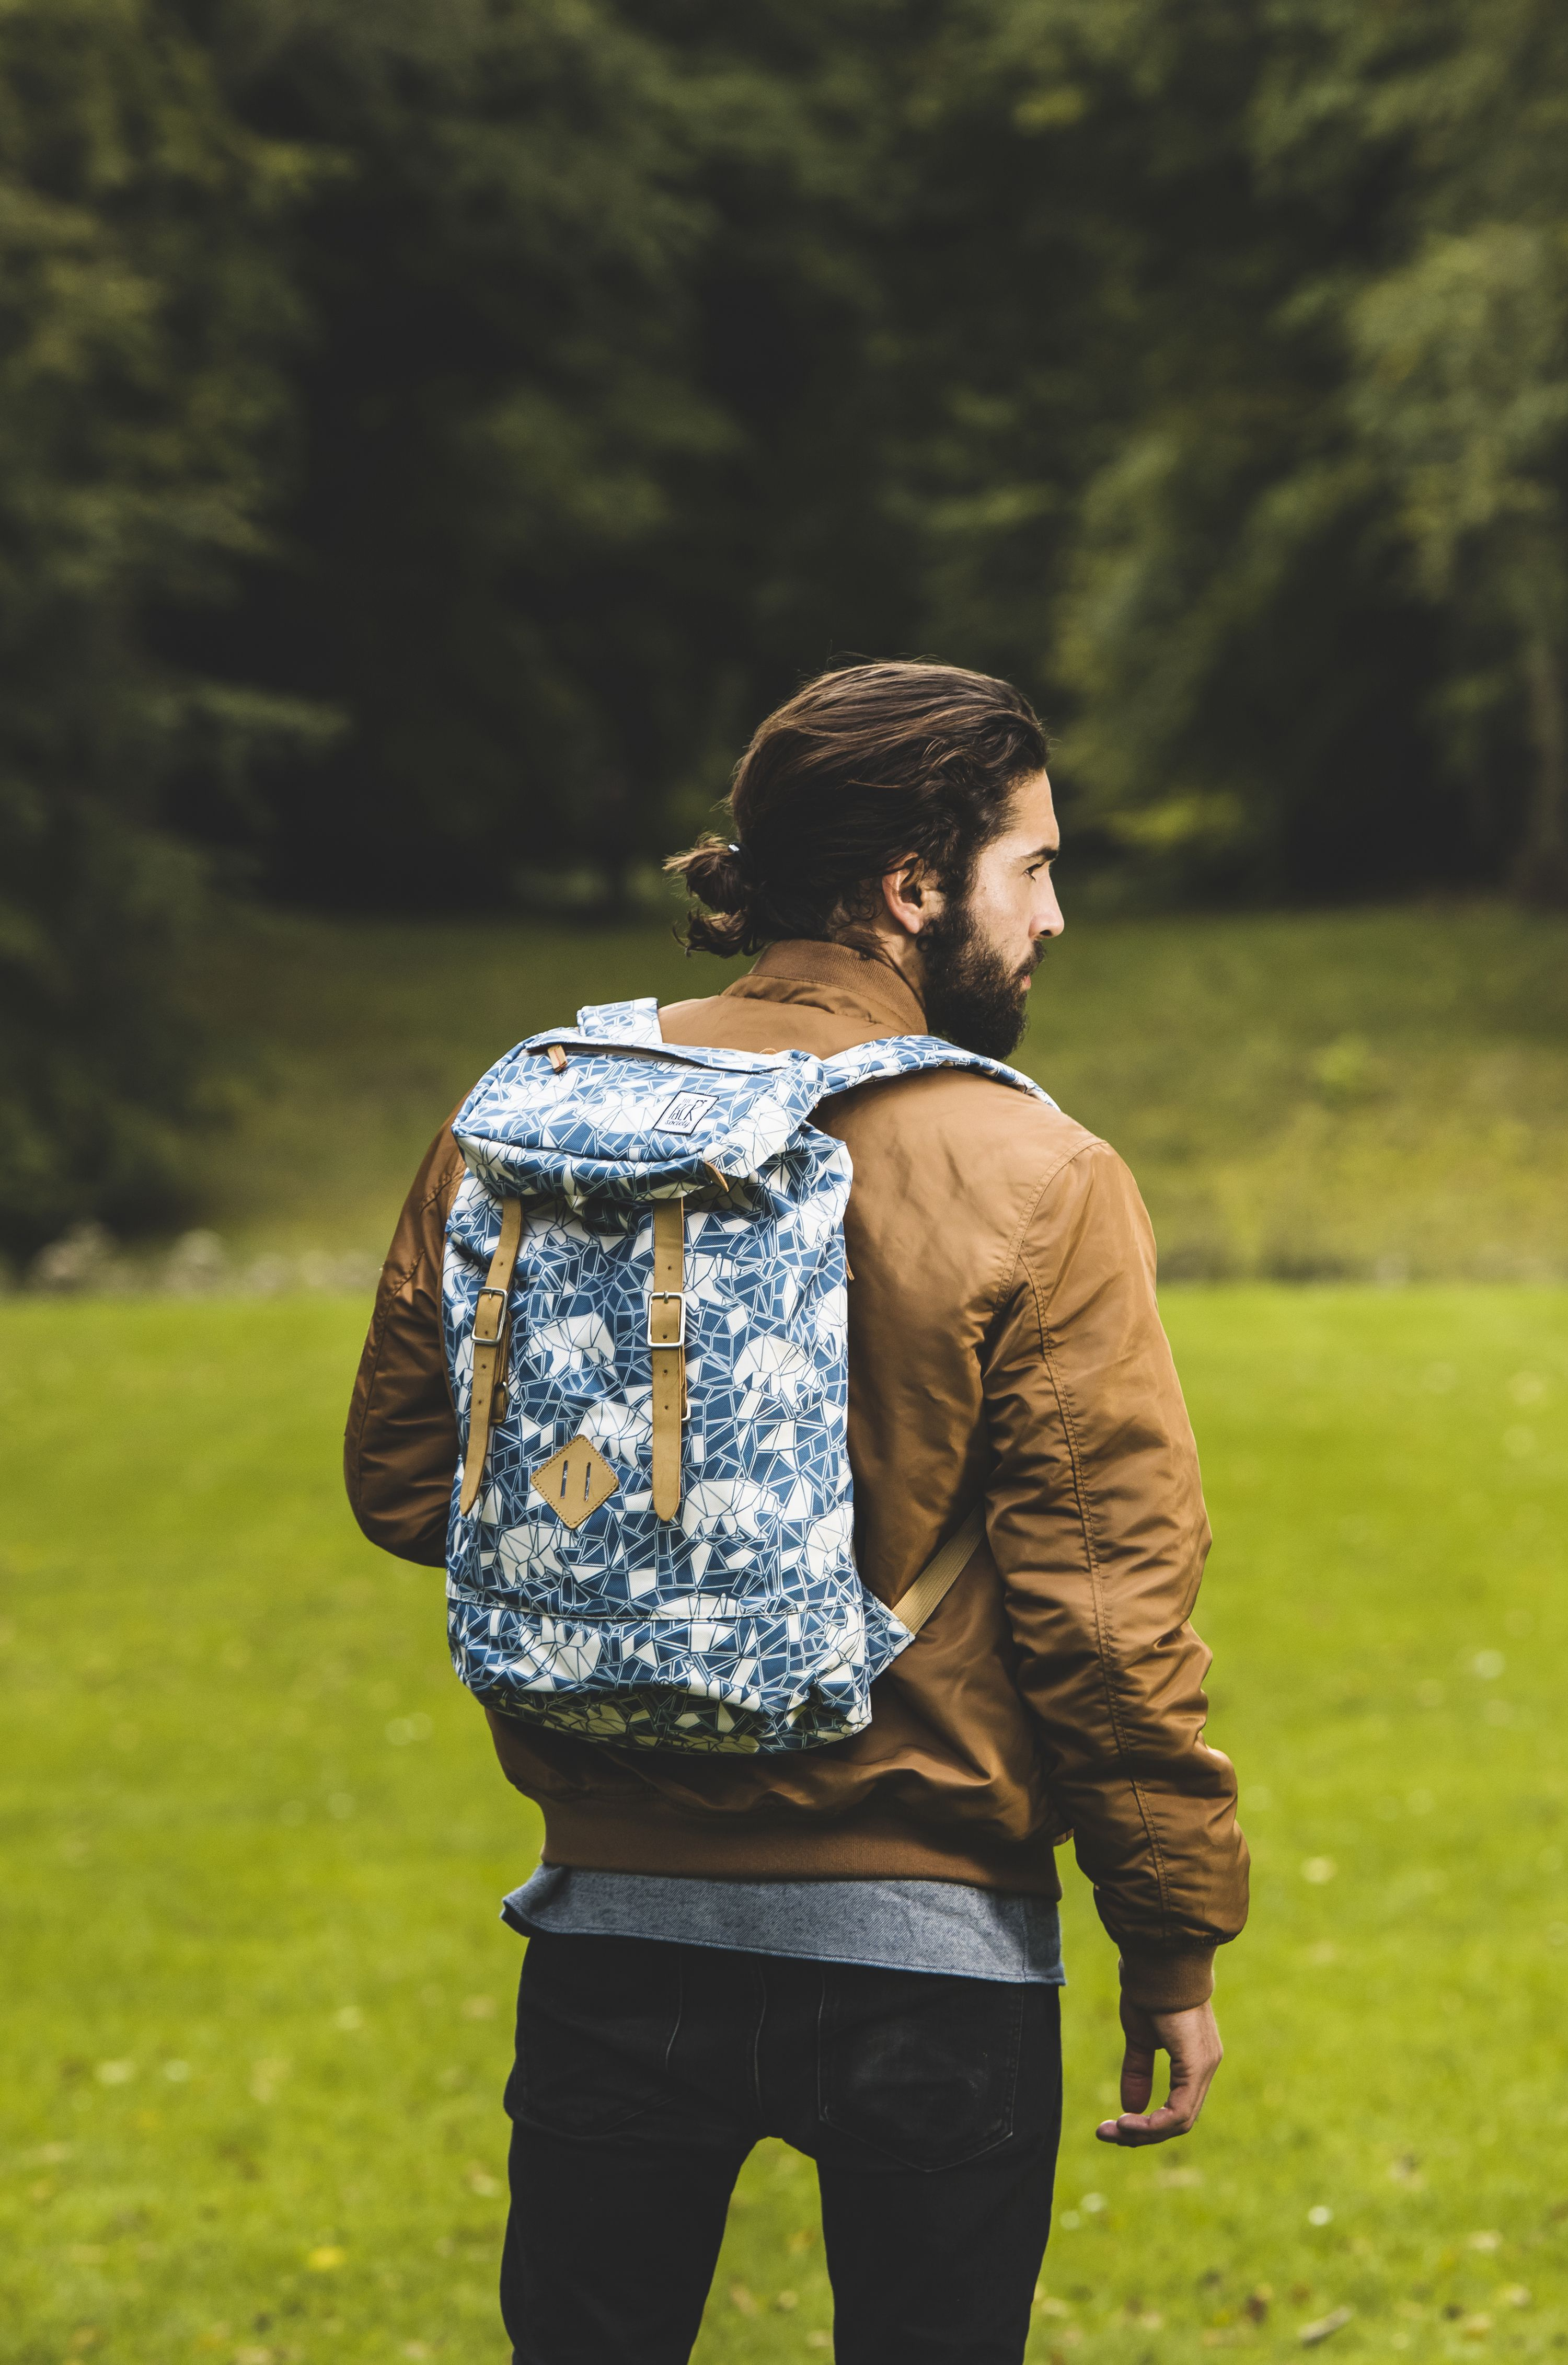 4863d6005278c The Pack Society Premium Backpack - get yours NOW at usc.co.uk ...